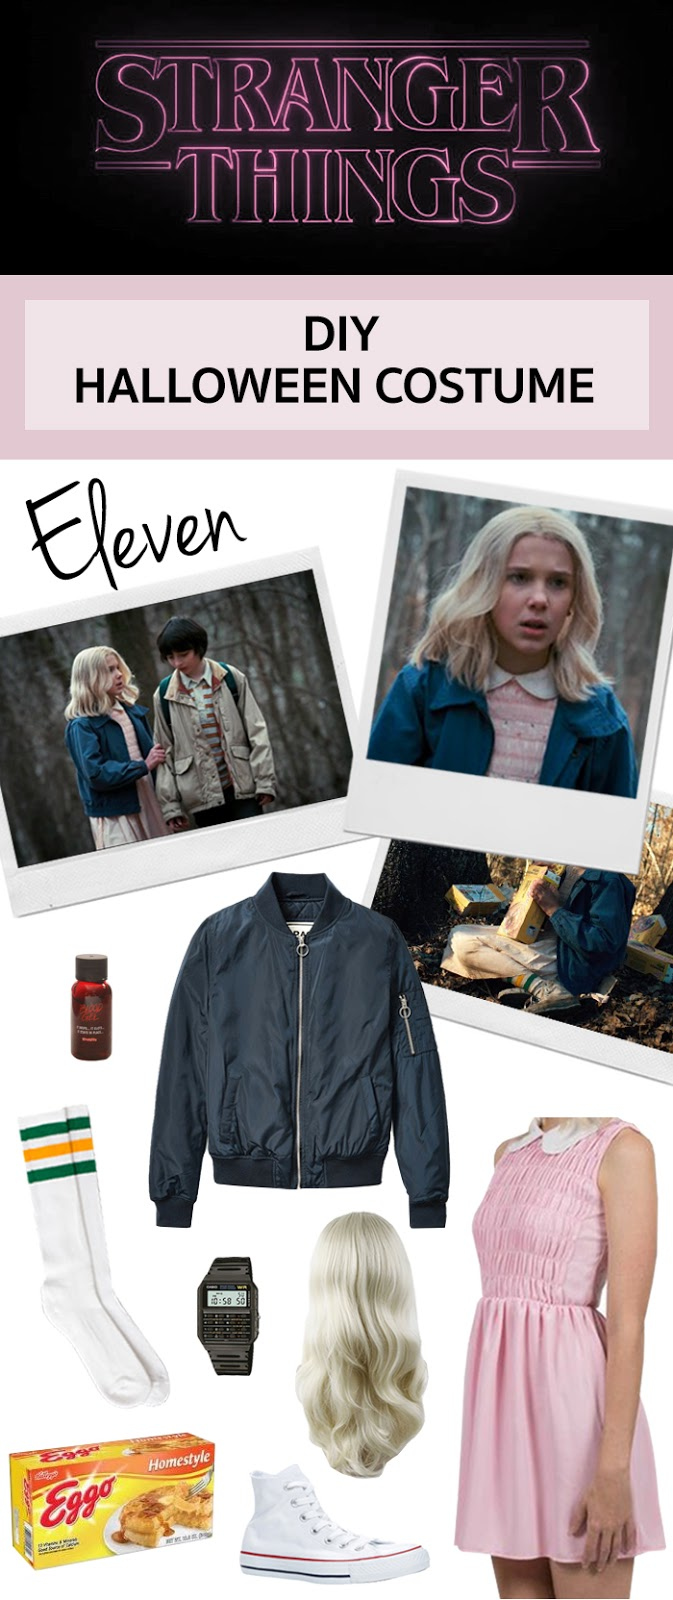 Halloween costume idea Eleven from Stranger Things